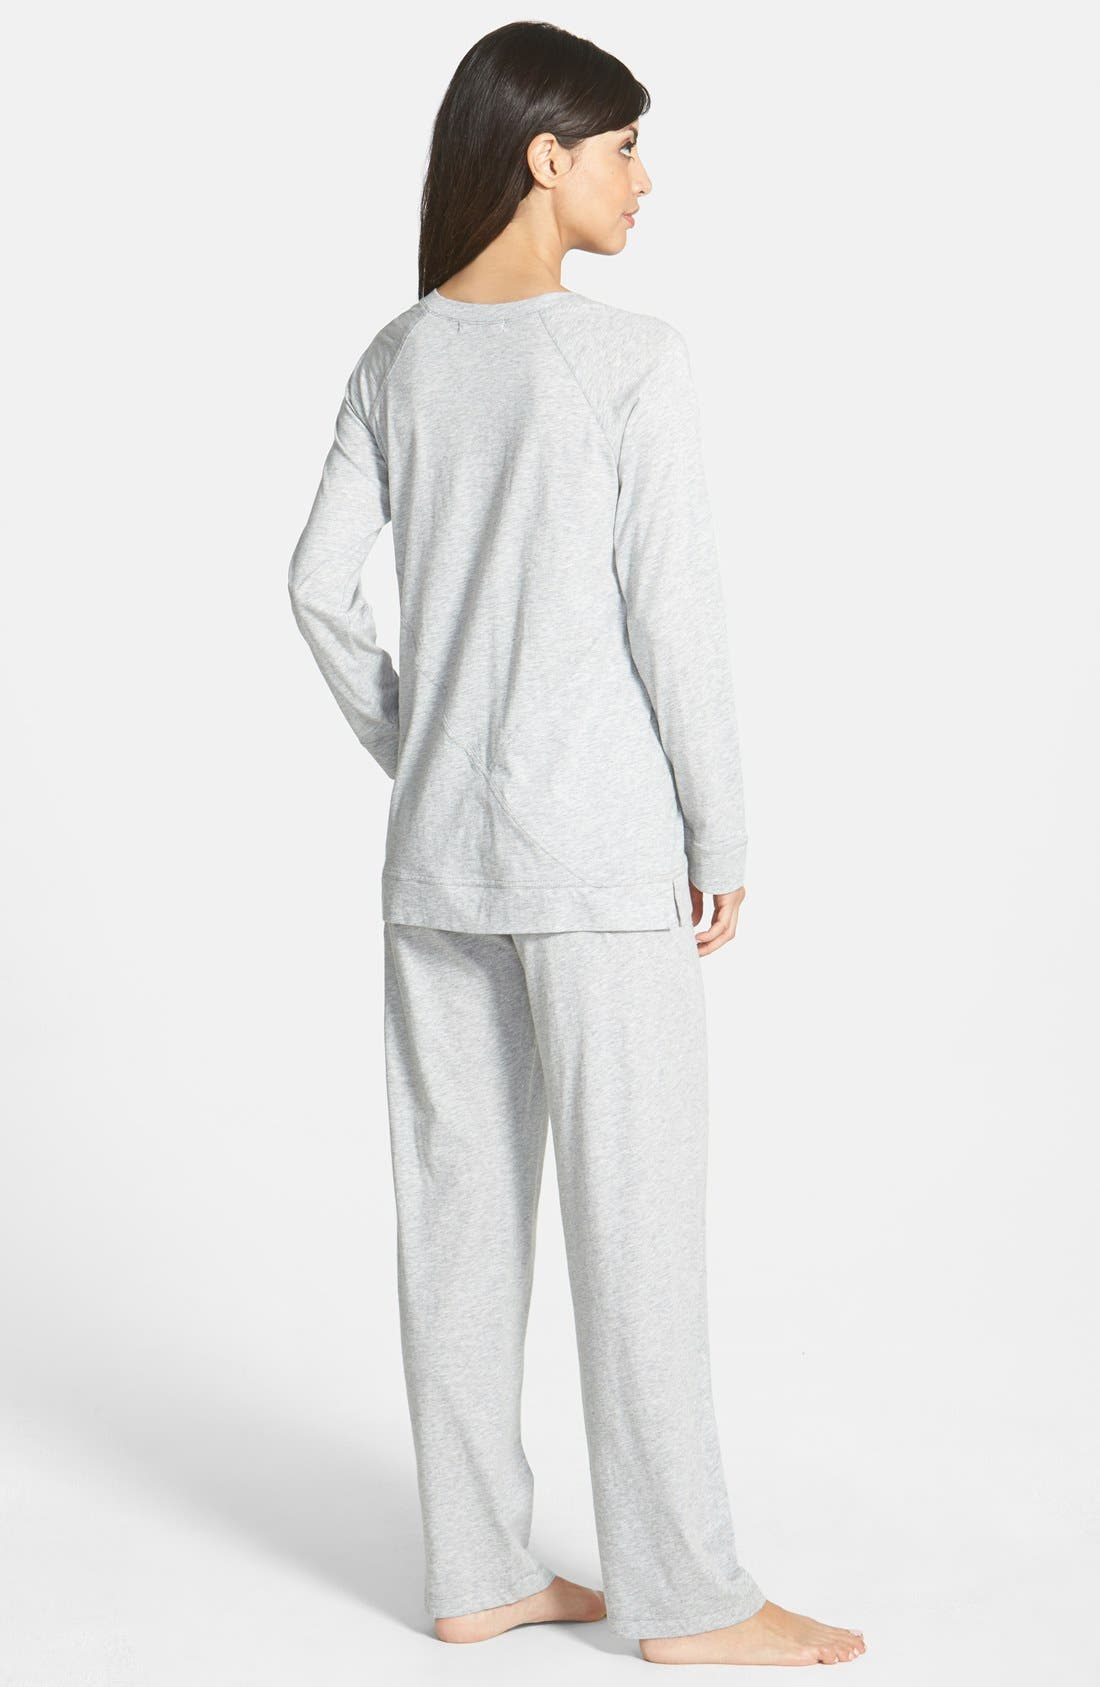 Donna Karan Pima Cotton Pajamas,                             Alternate thumbnail 2, color,                             031